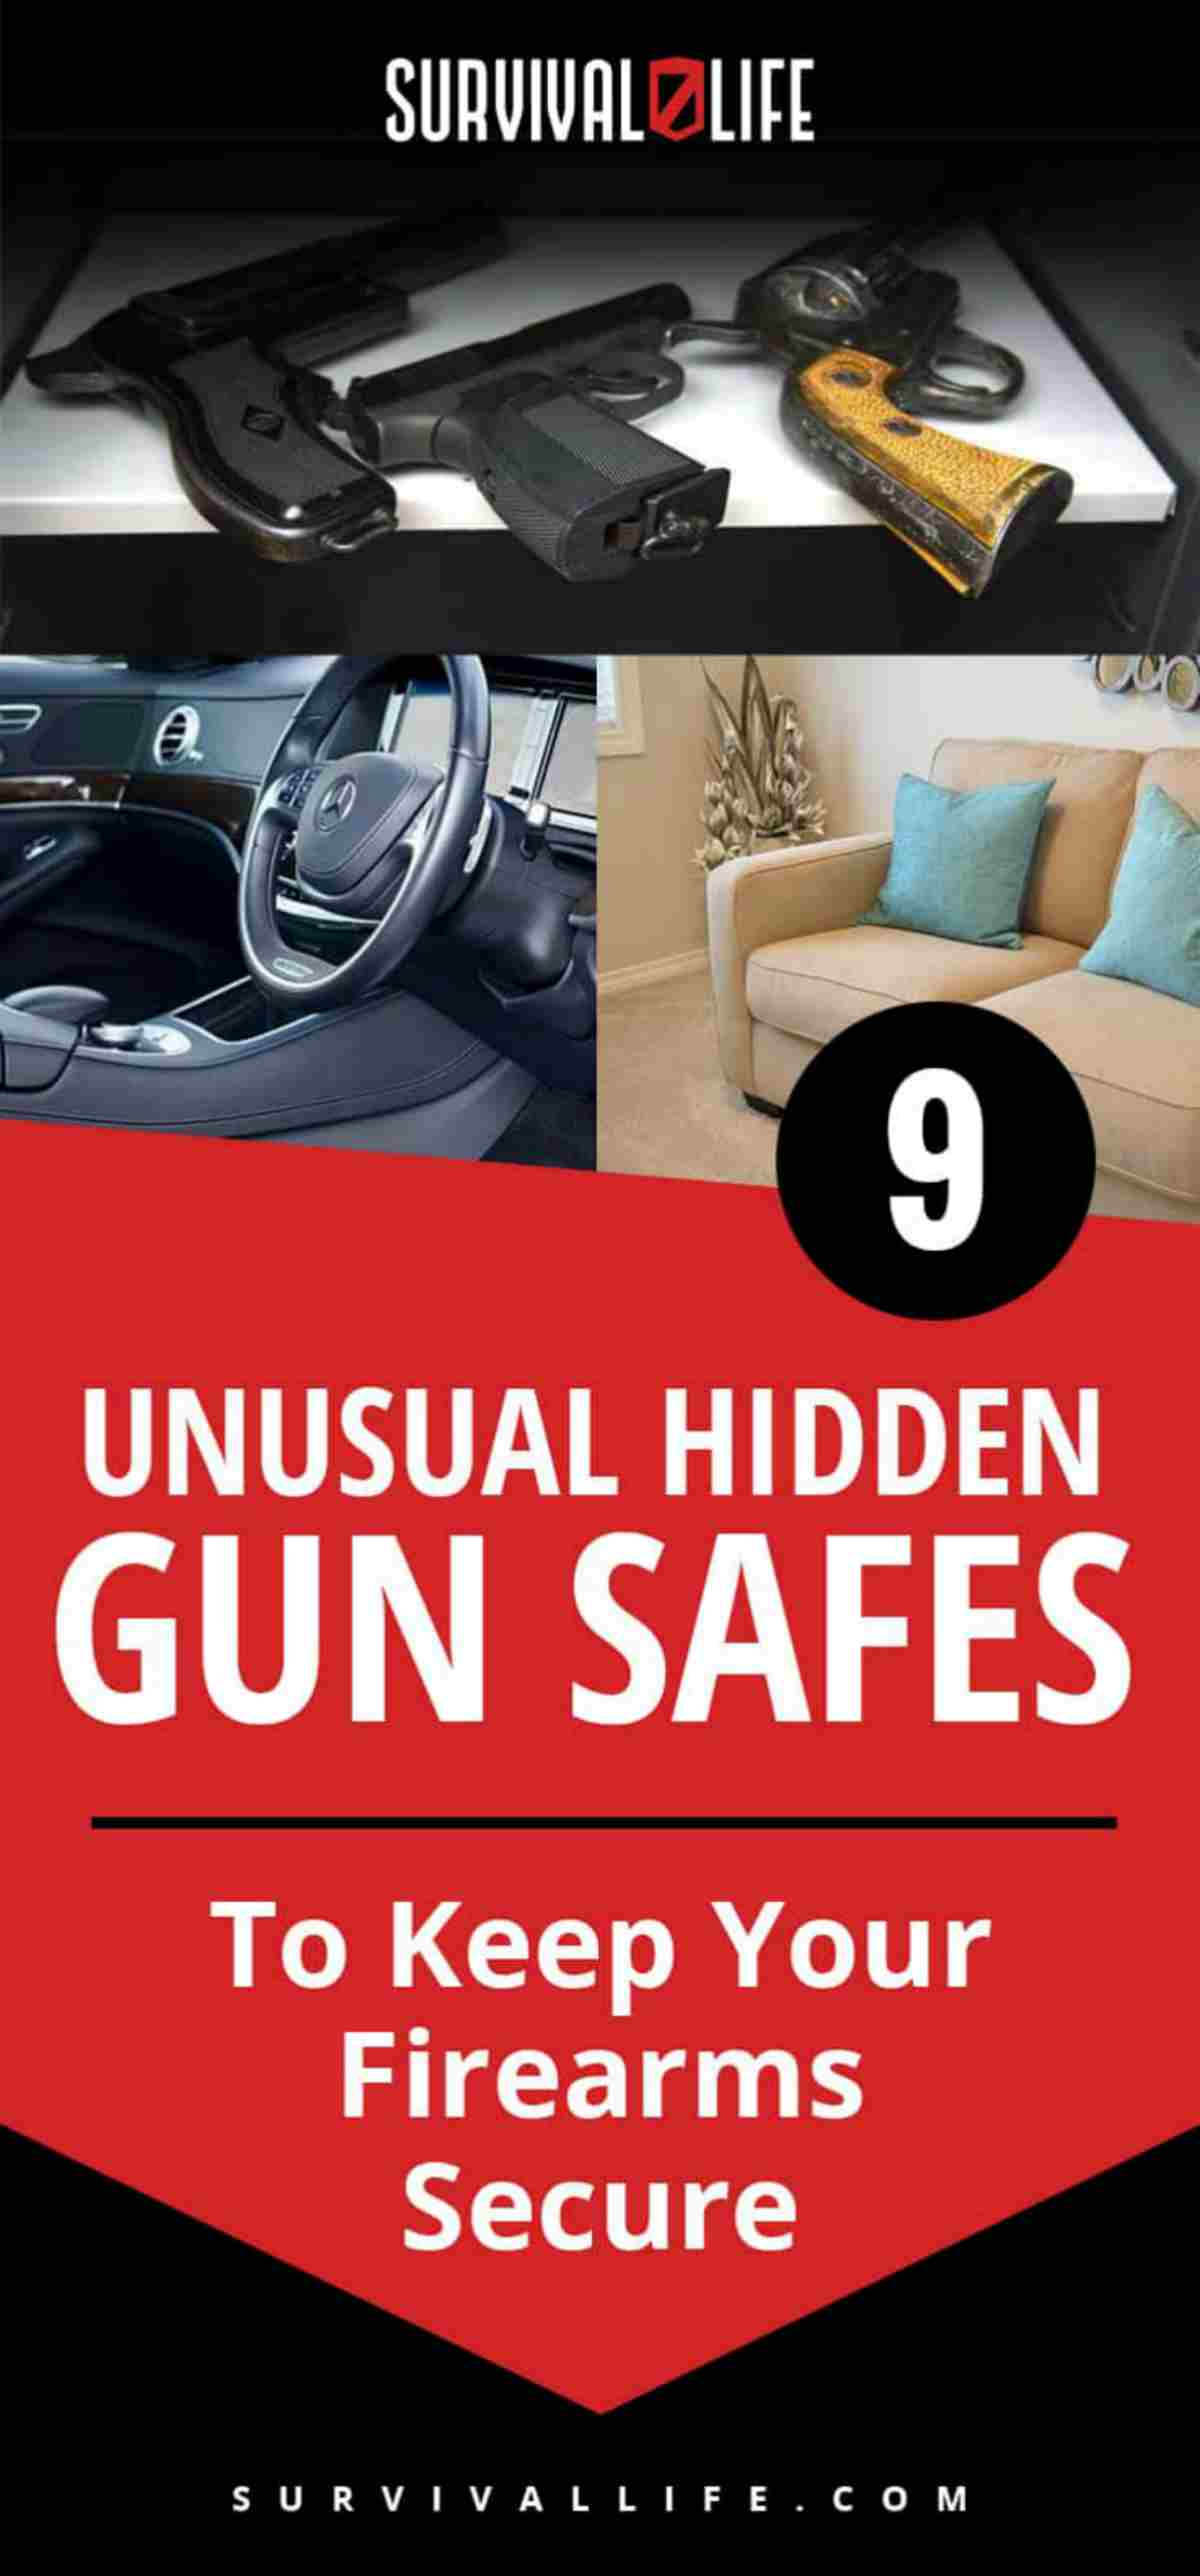 Placard | Gun Safes Ideas | Unusual Hidden Gun Safes To Keep Your Firearms Secure